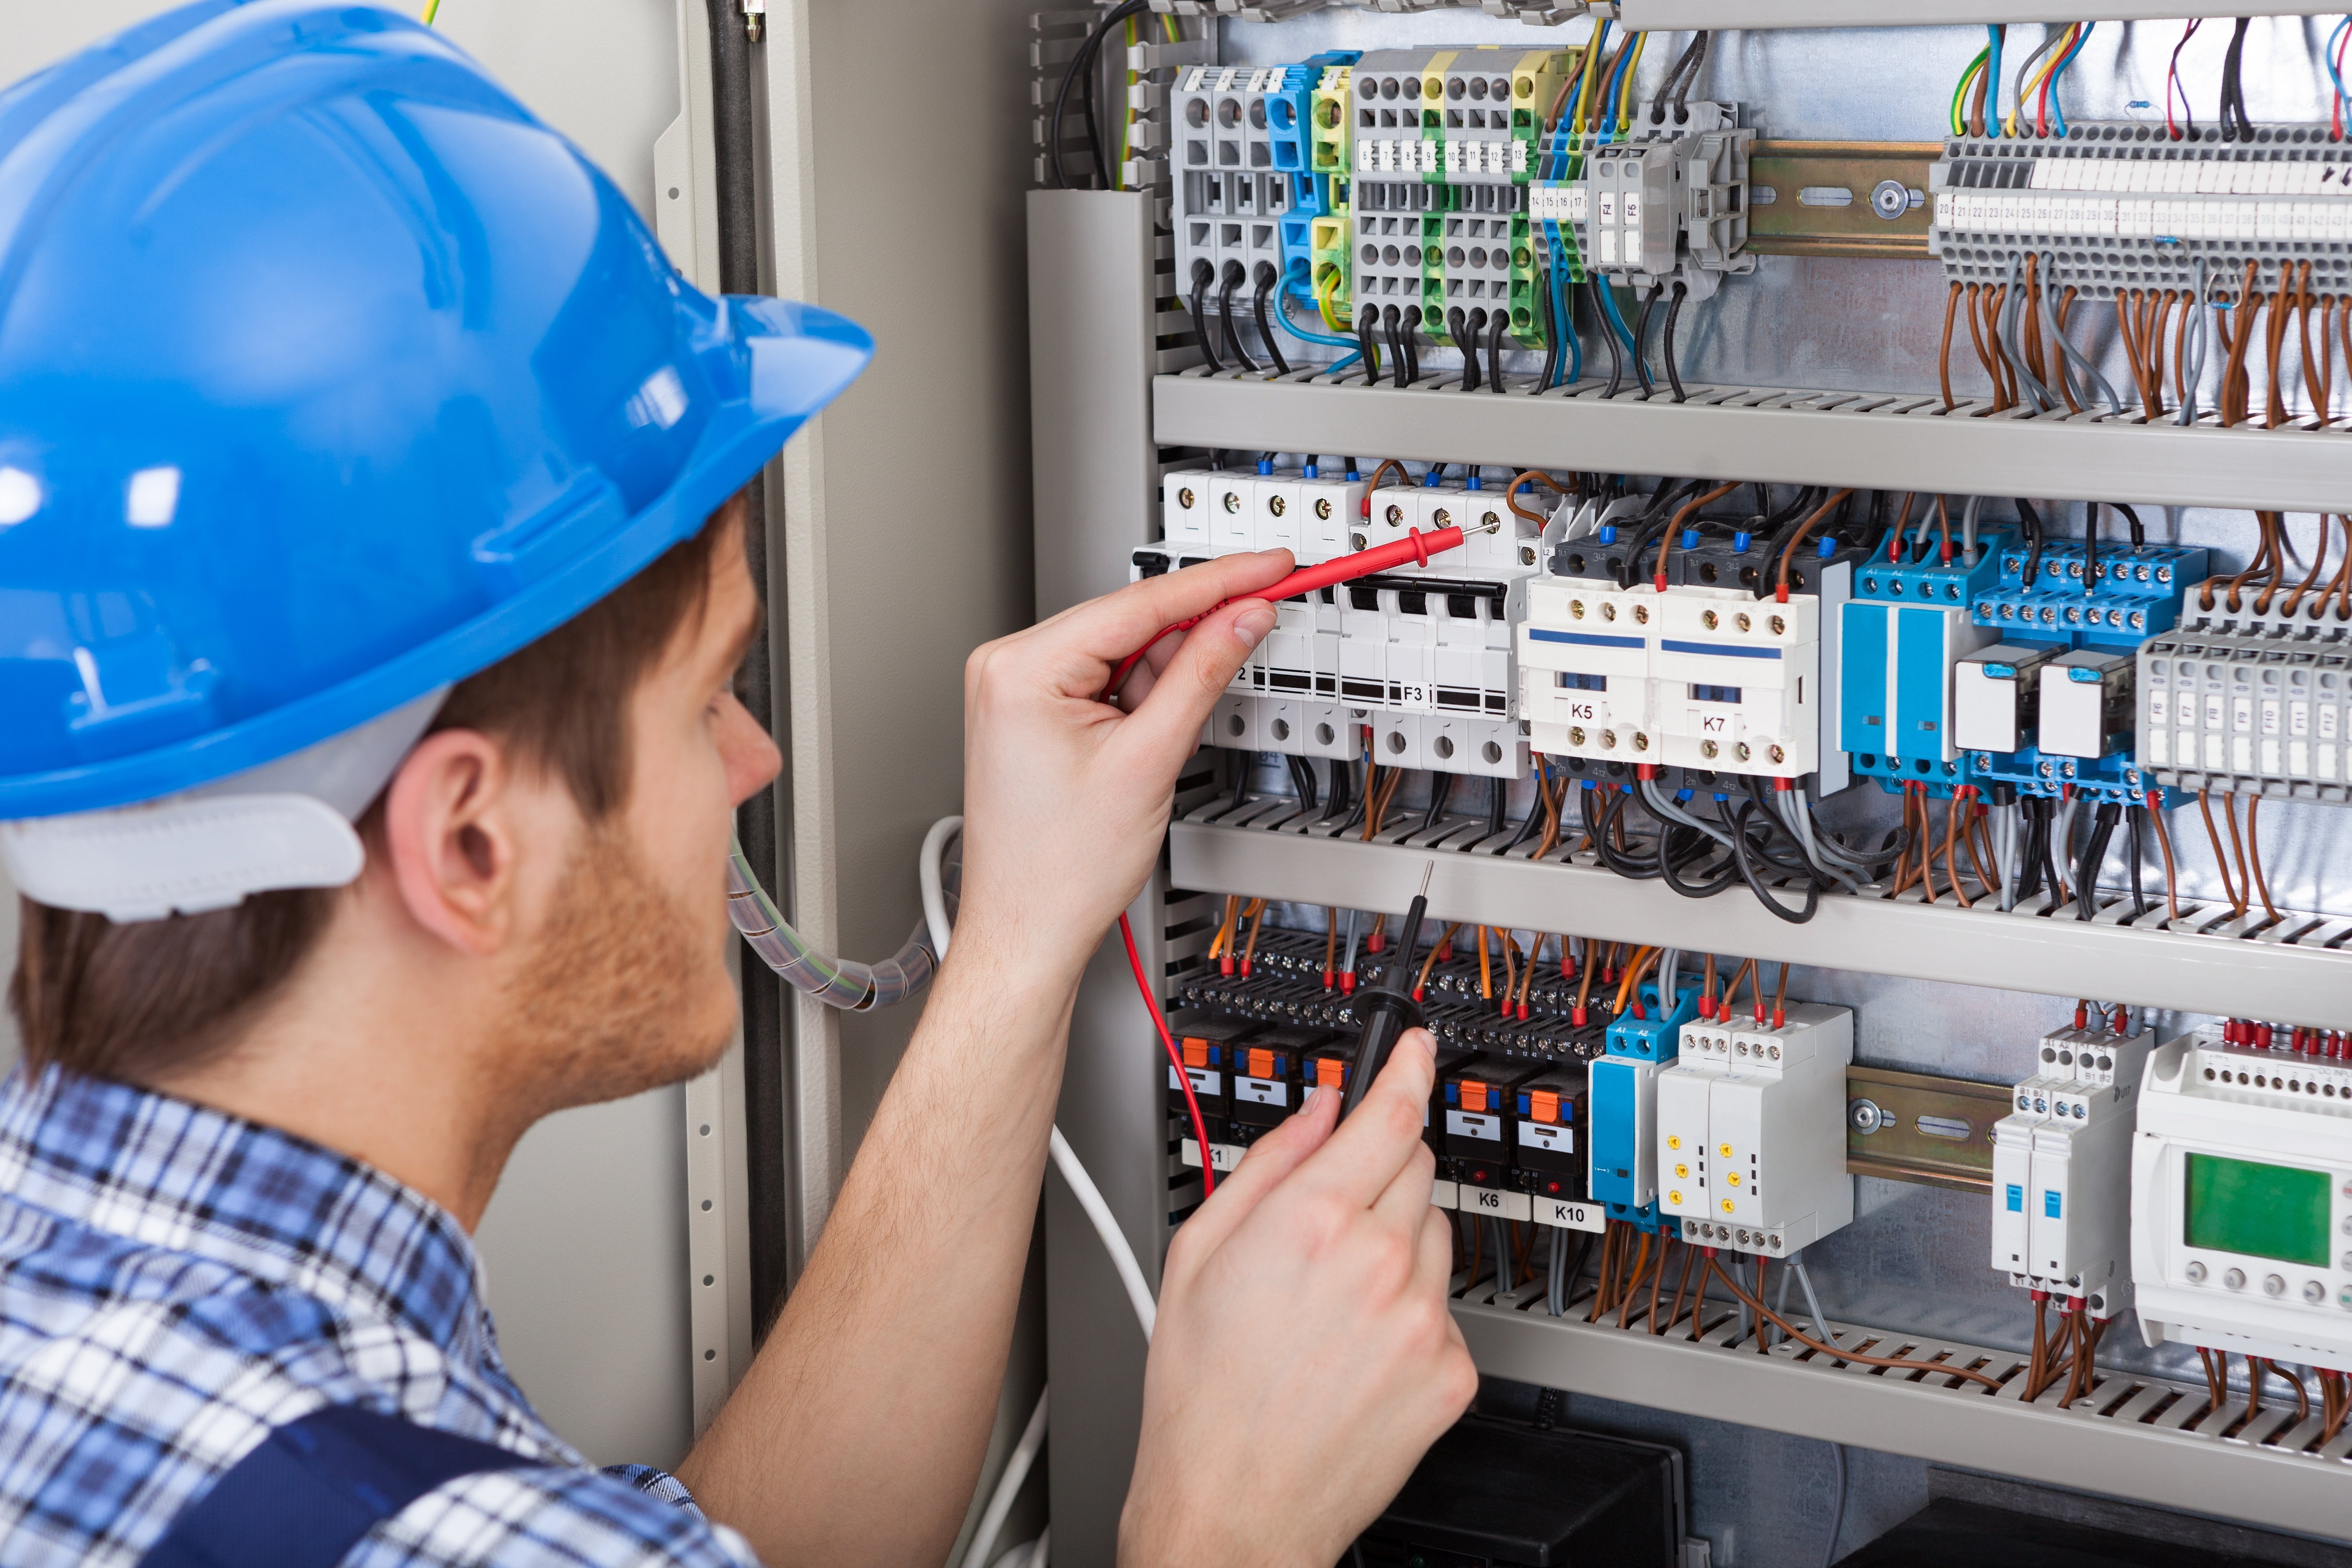 Engineer with Electrical Box Field Services